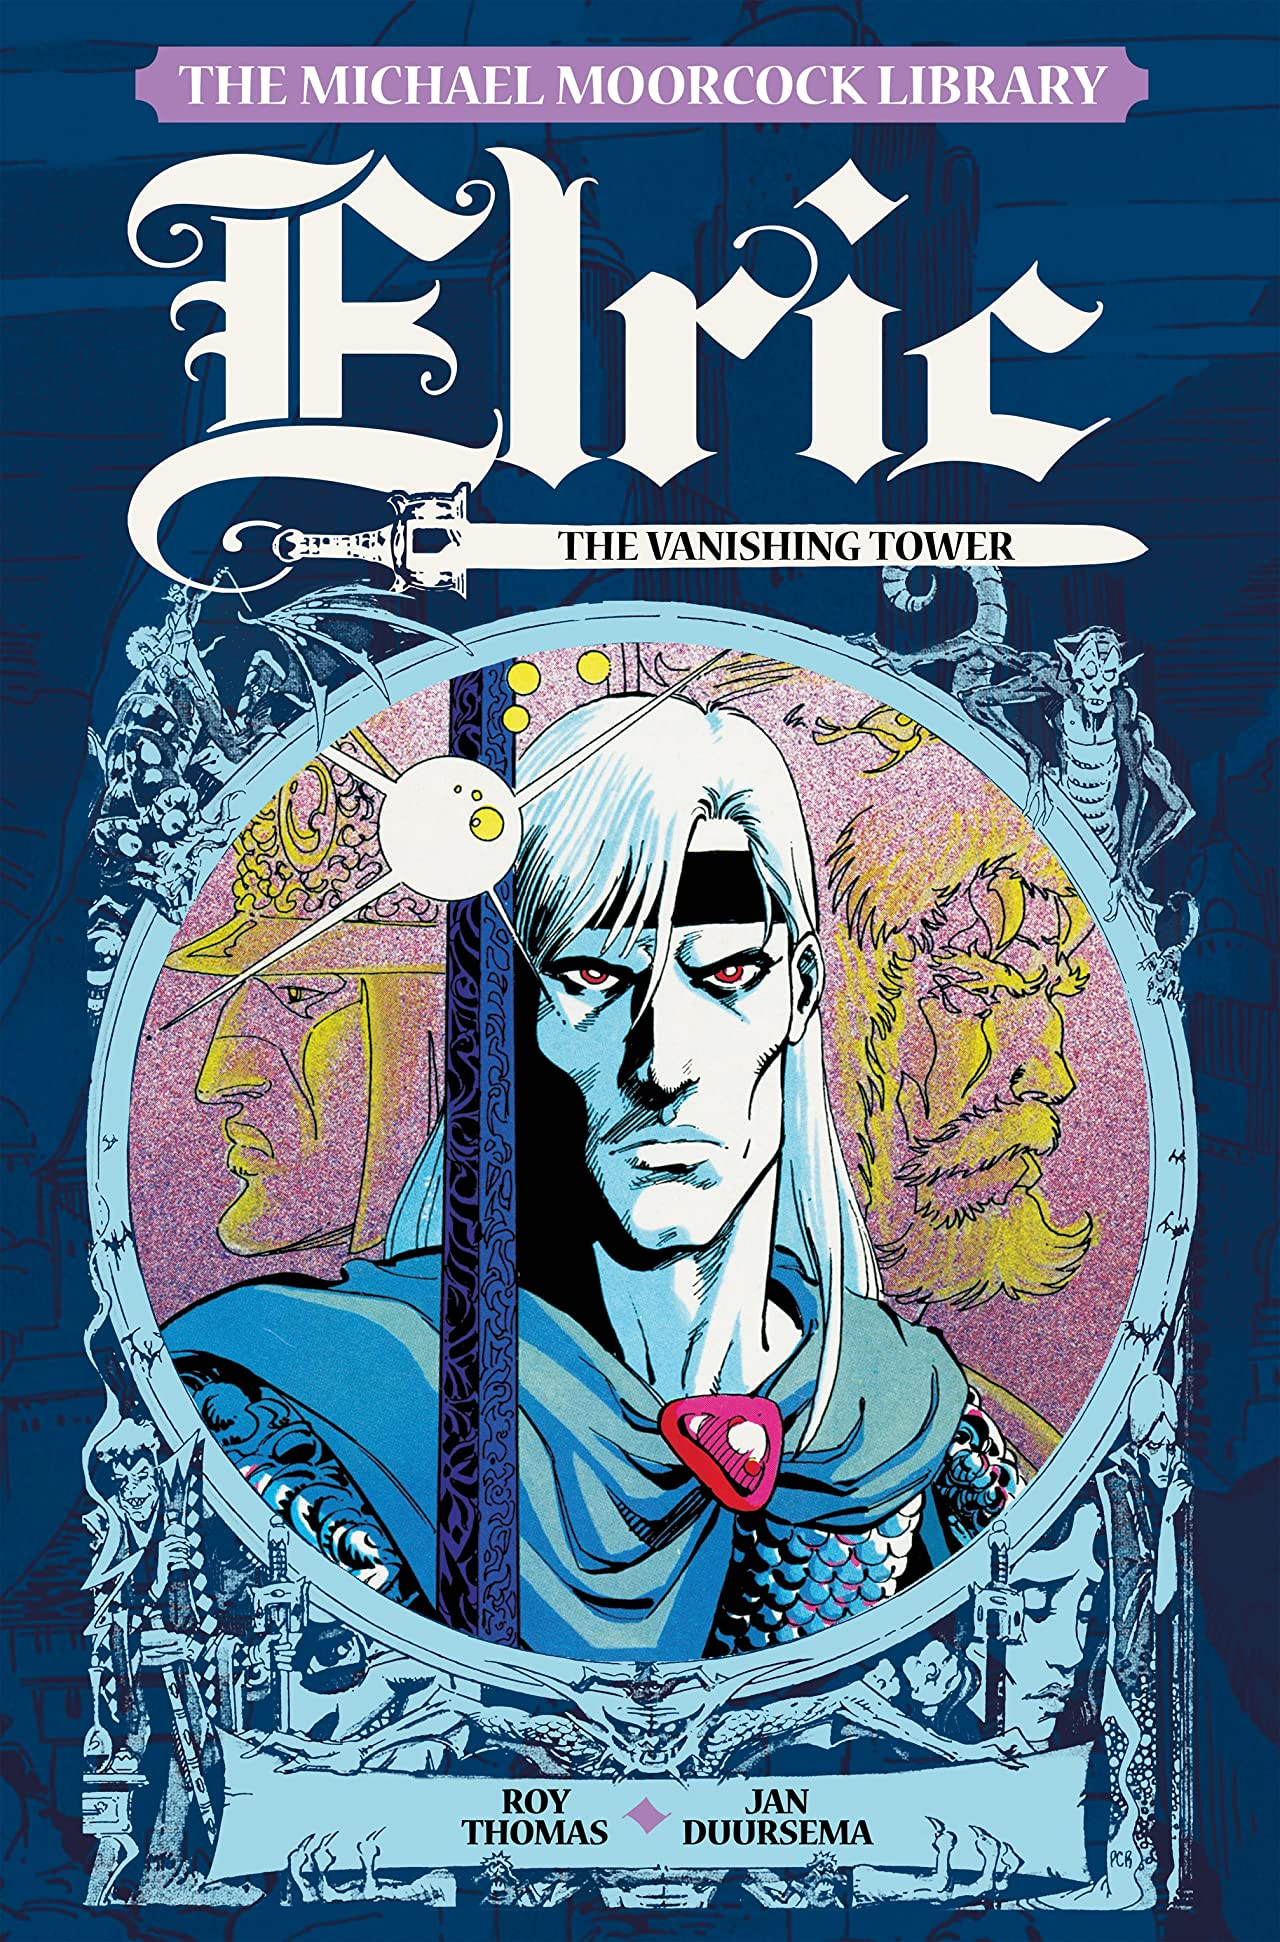 The Michael Moorcock Library: Elric - The Vanishing Tower Vol. 5